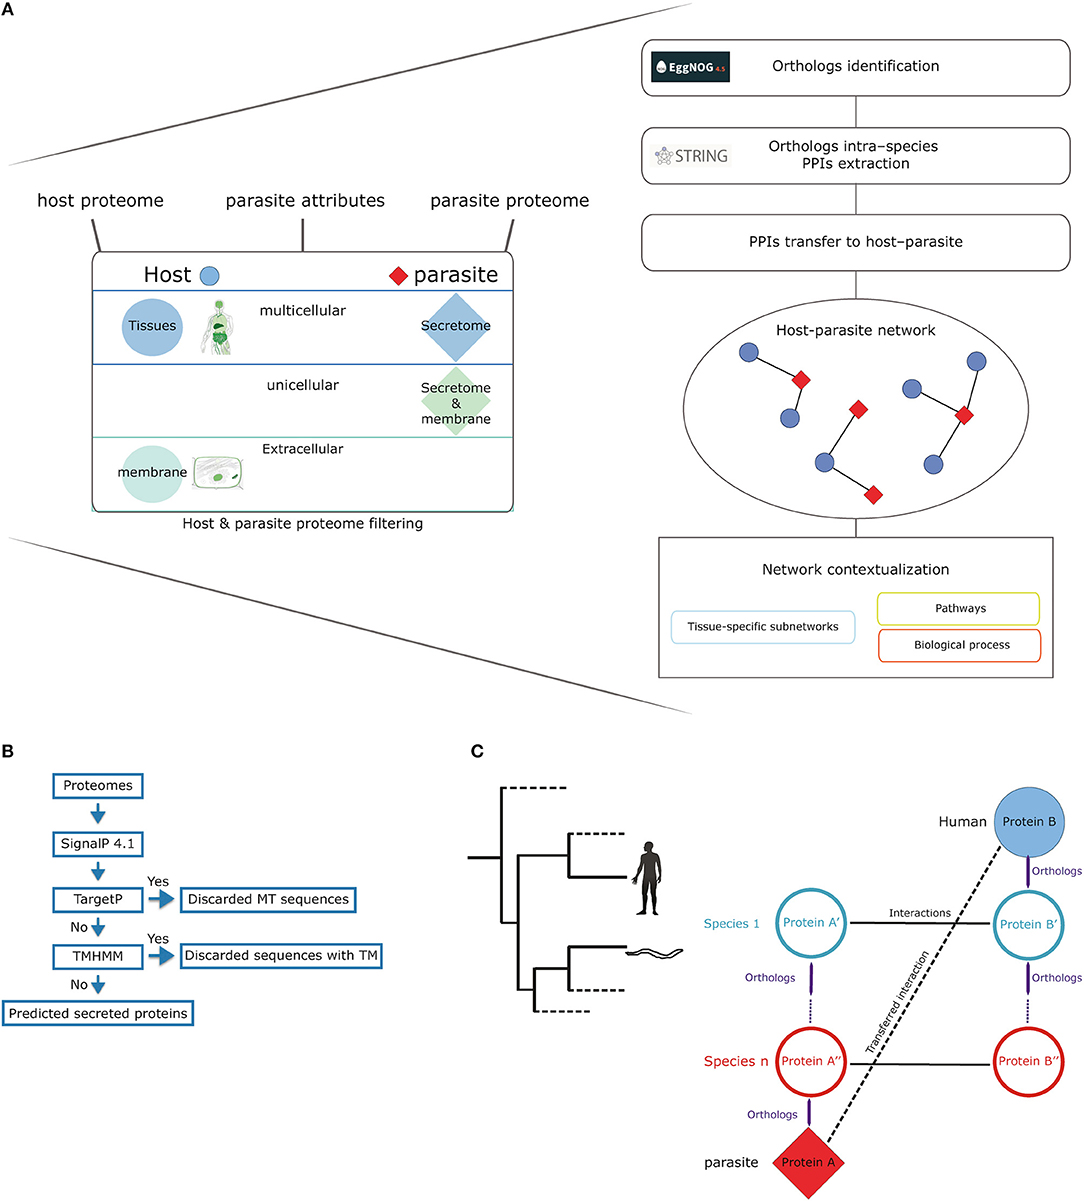 Frontiers Analysis Of Predicted Host Parasite Interactomes